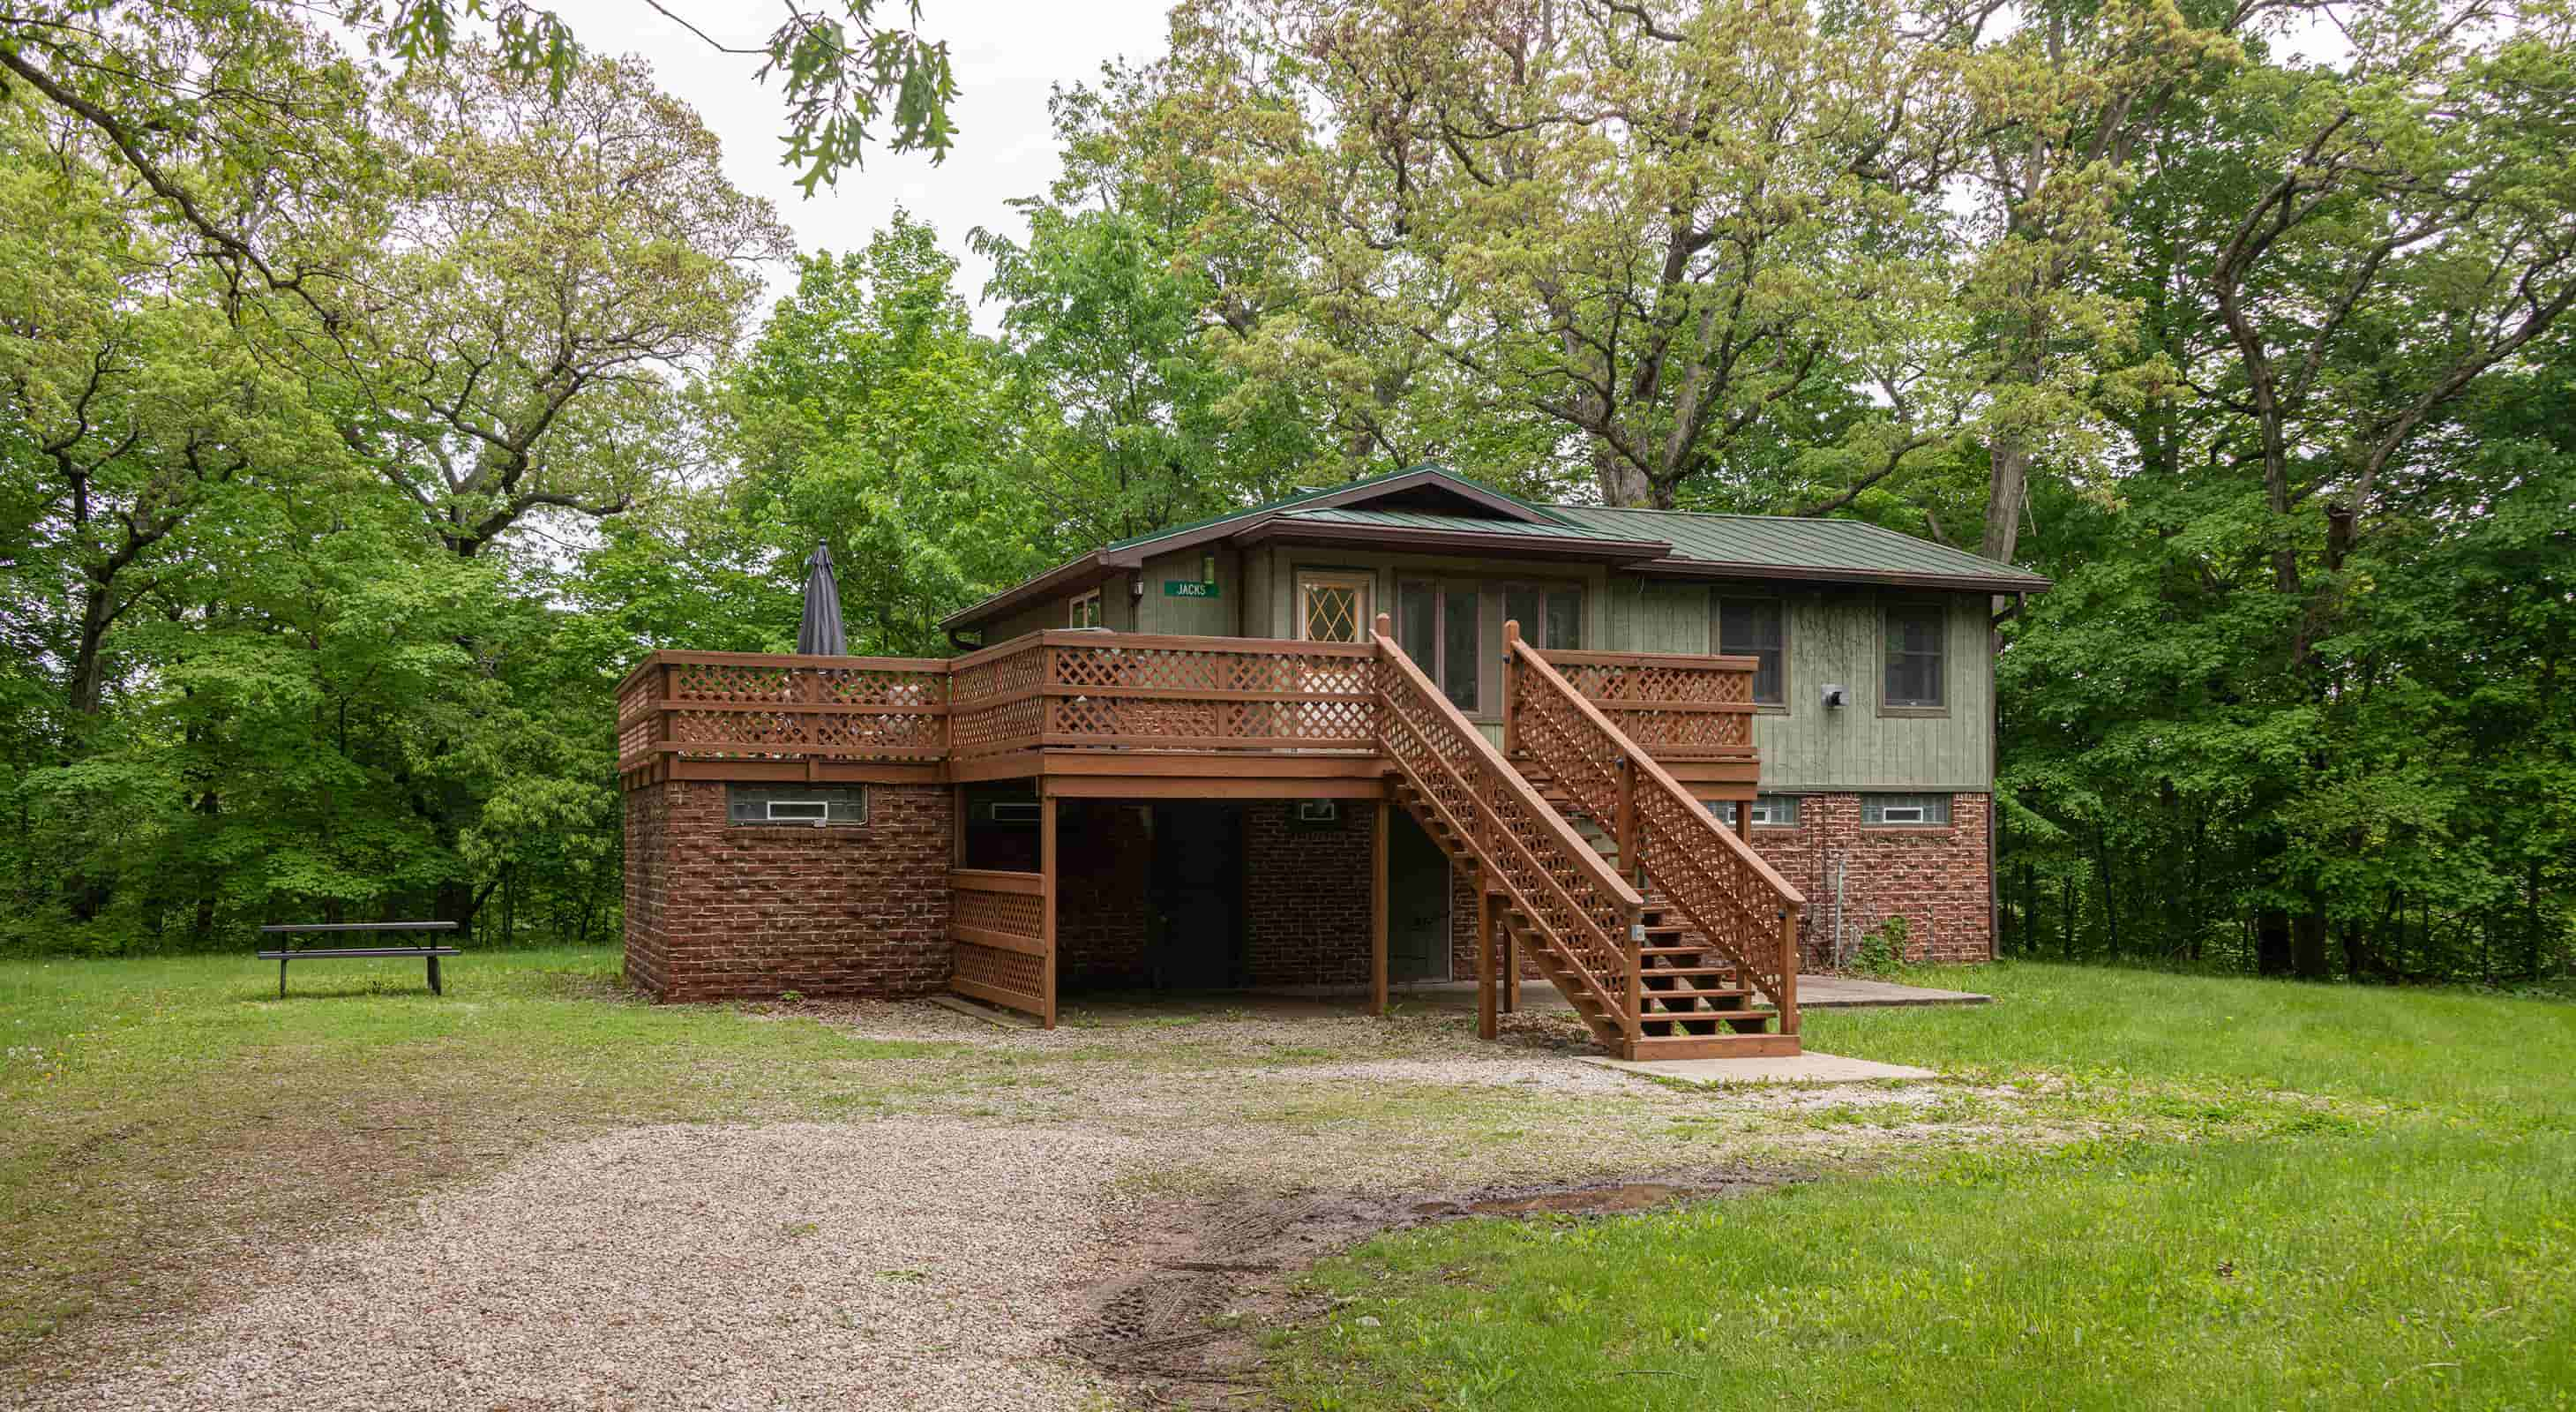 Jack's Deluxe Cabin for a romantic Illinois cabin getaway